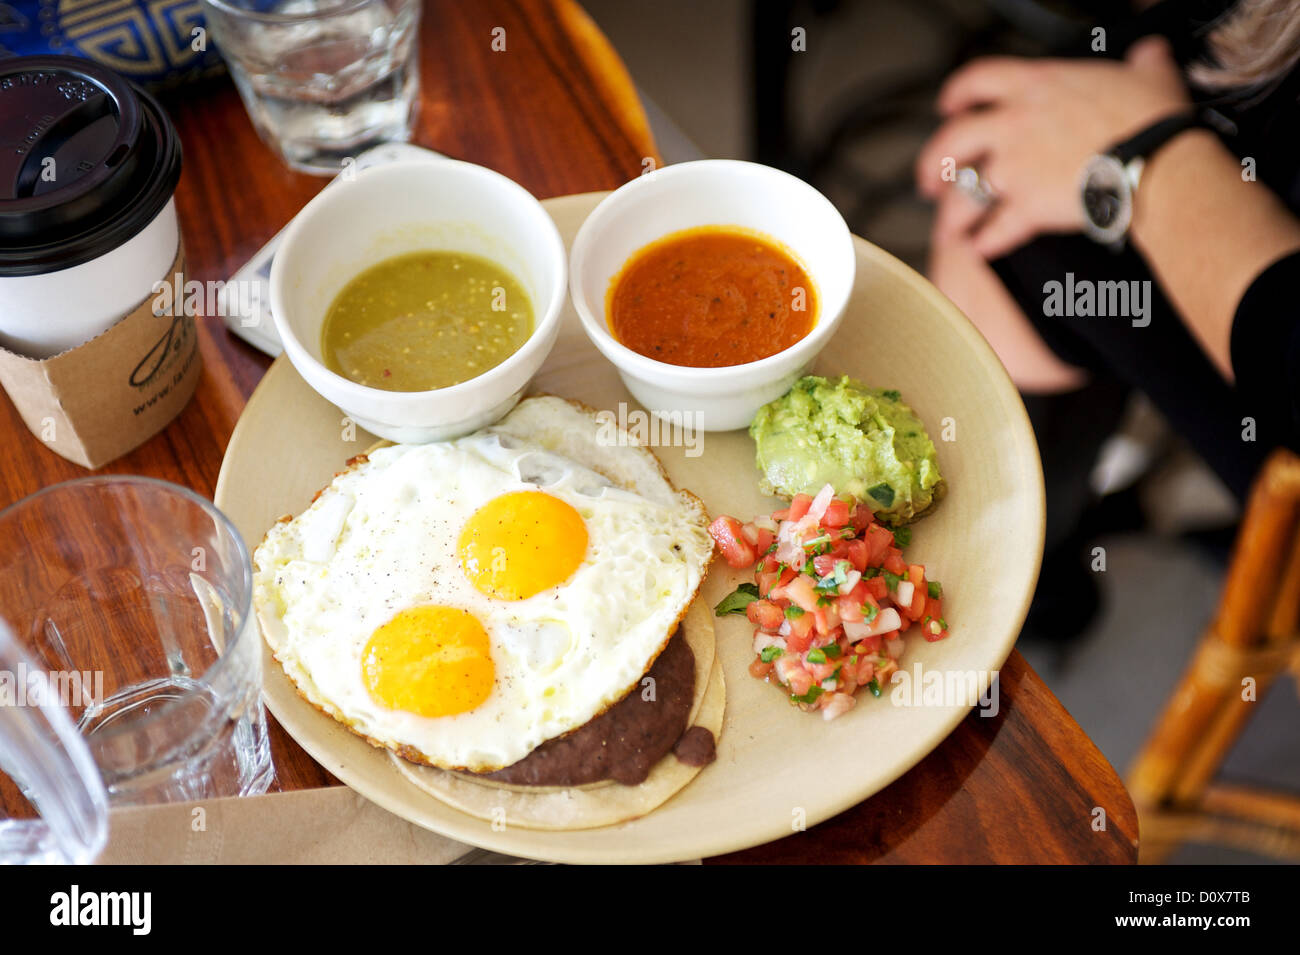 Mexican breakfast huevos rancheros. Eggs, salsa, guacamole,  Traditional Mexican breakfast at a restaurant. - Stock Image